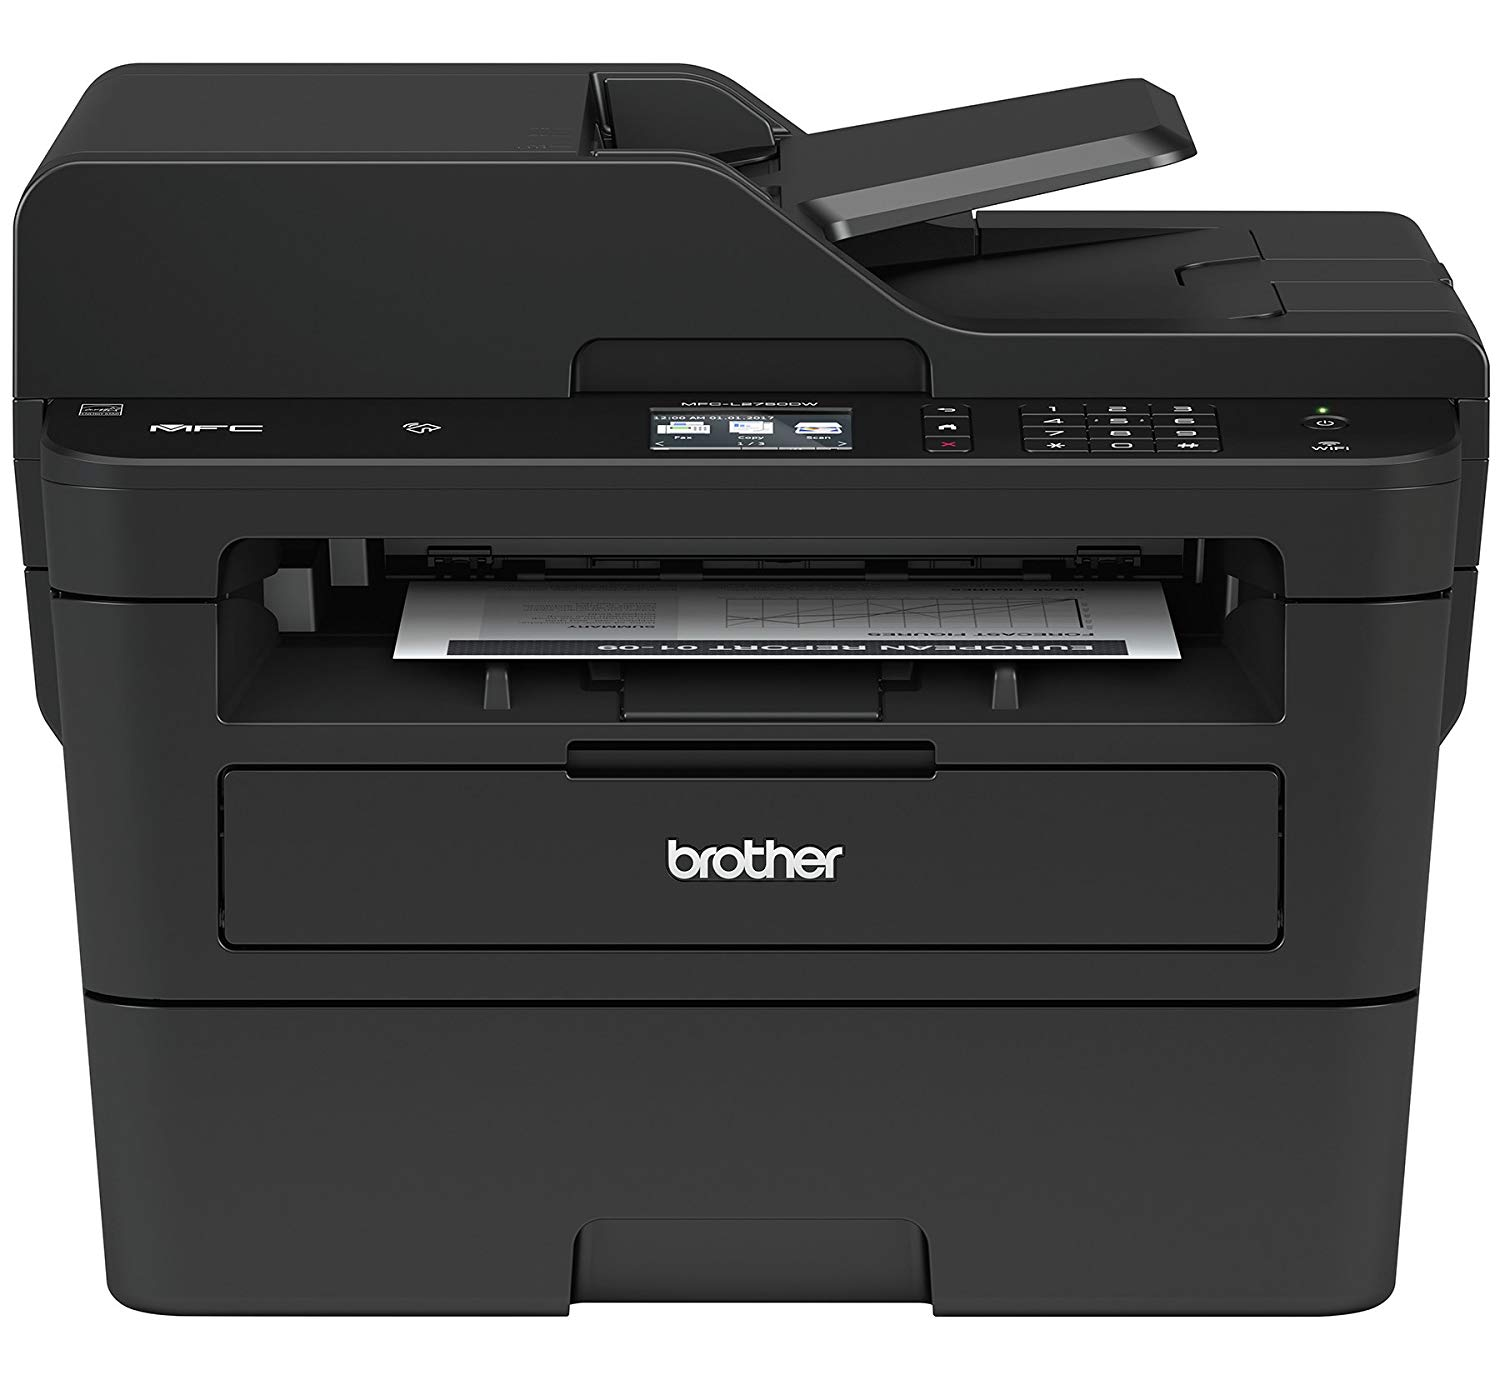 Multi Function Laser Printer Fax and Scanner (MFC-L2750DW)